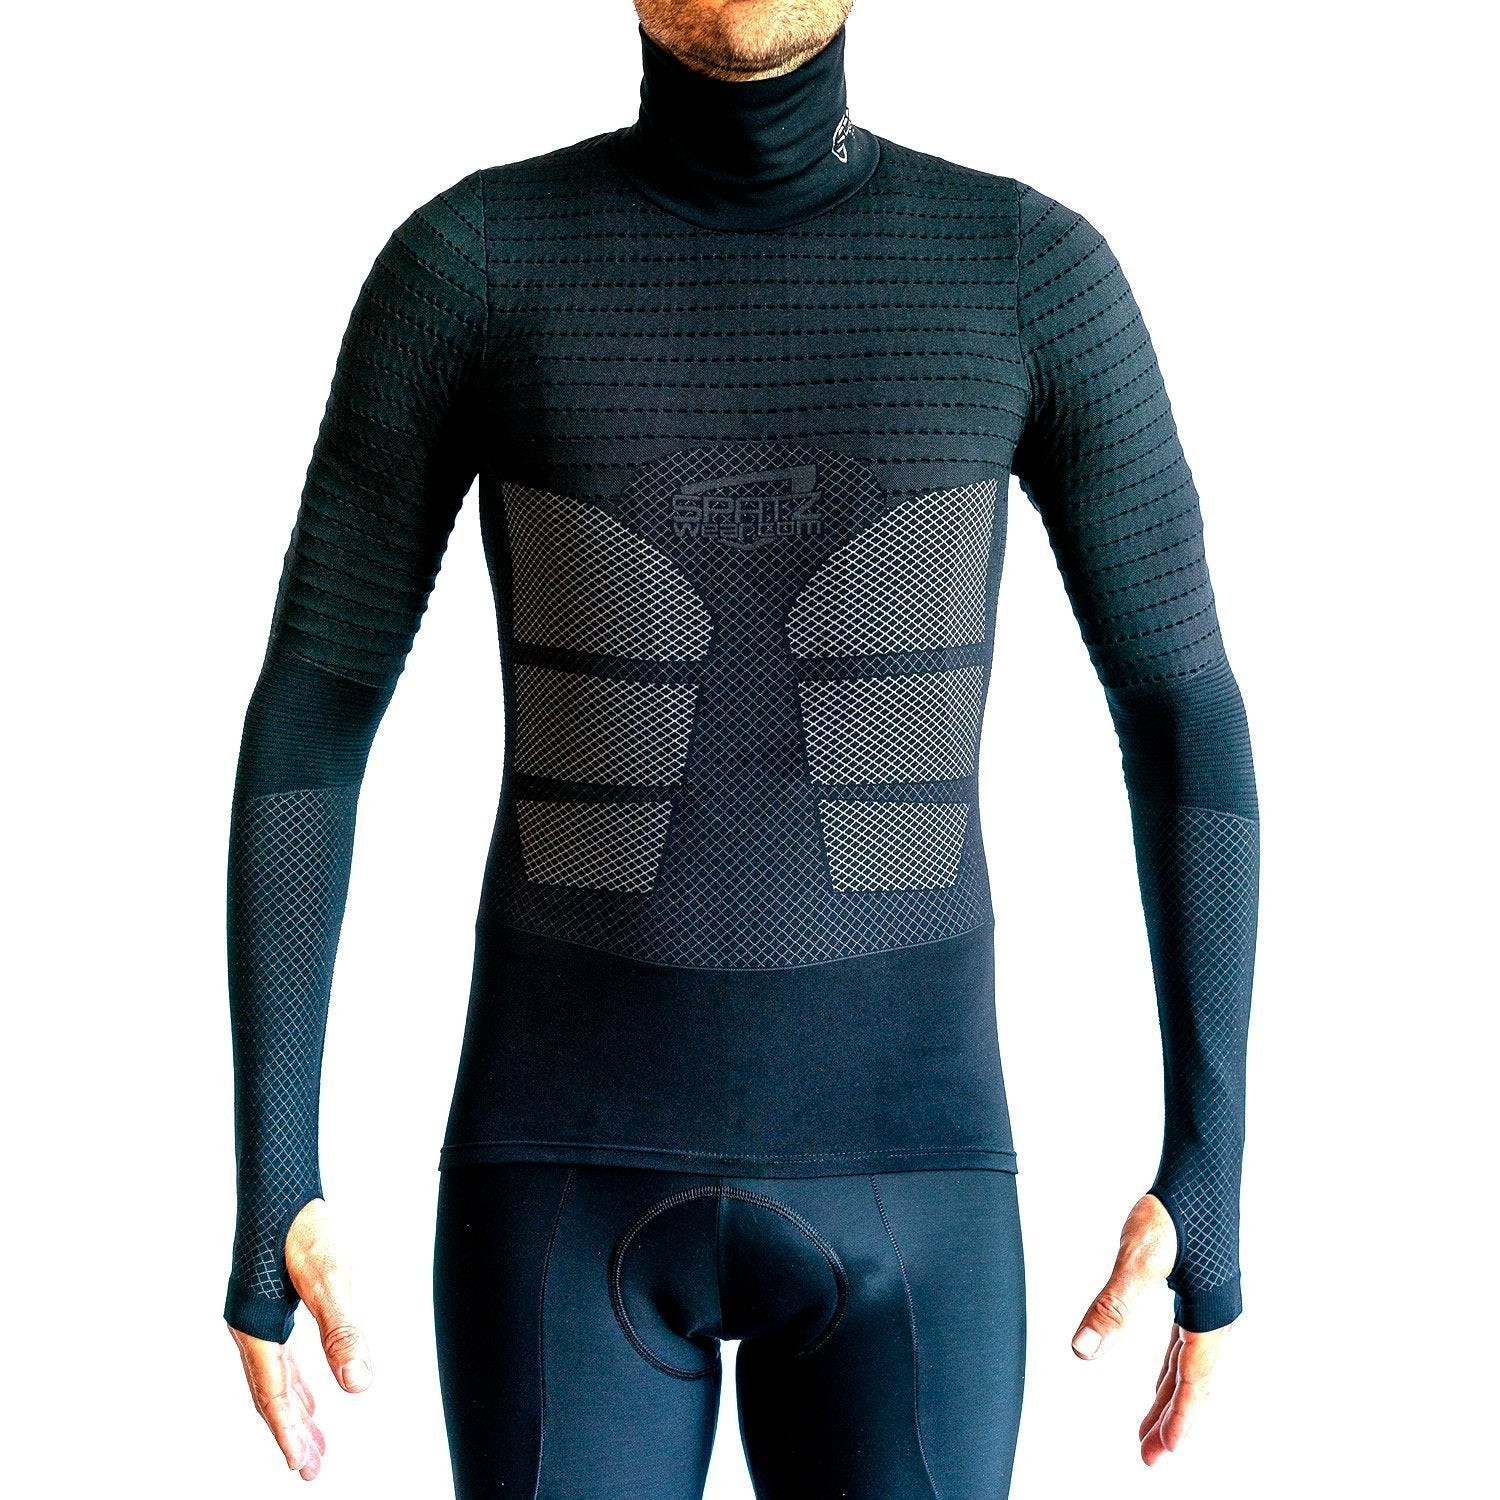 Spatzwear Cycle Clothing > Baselayers SPATZWEAR 'BASEZ 2' Black Baselayer